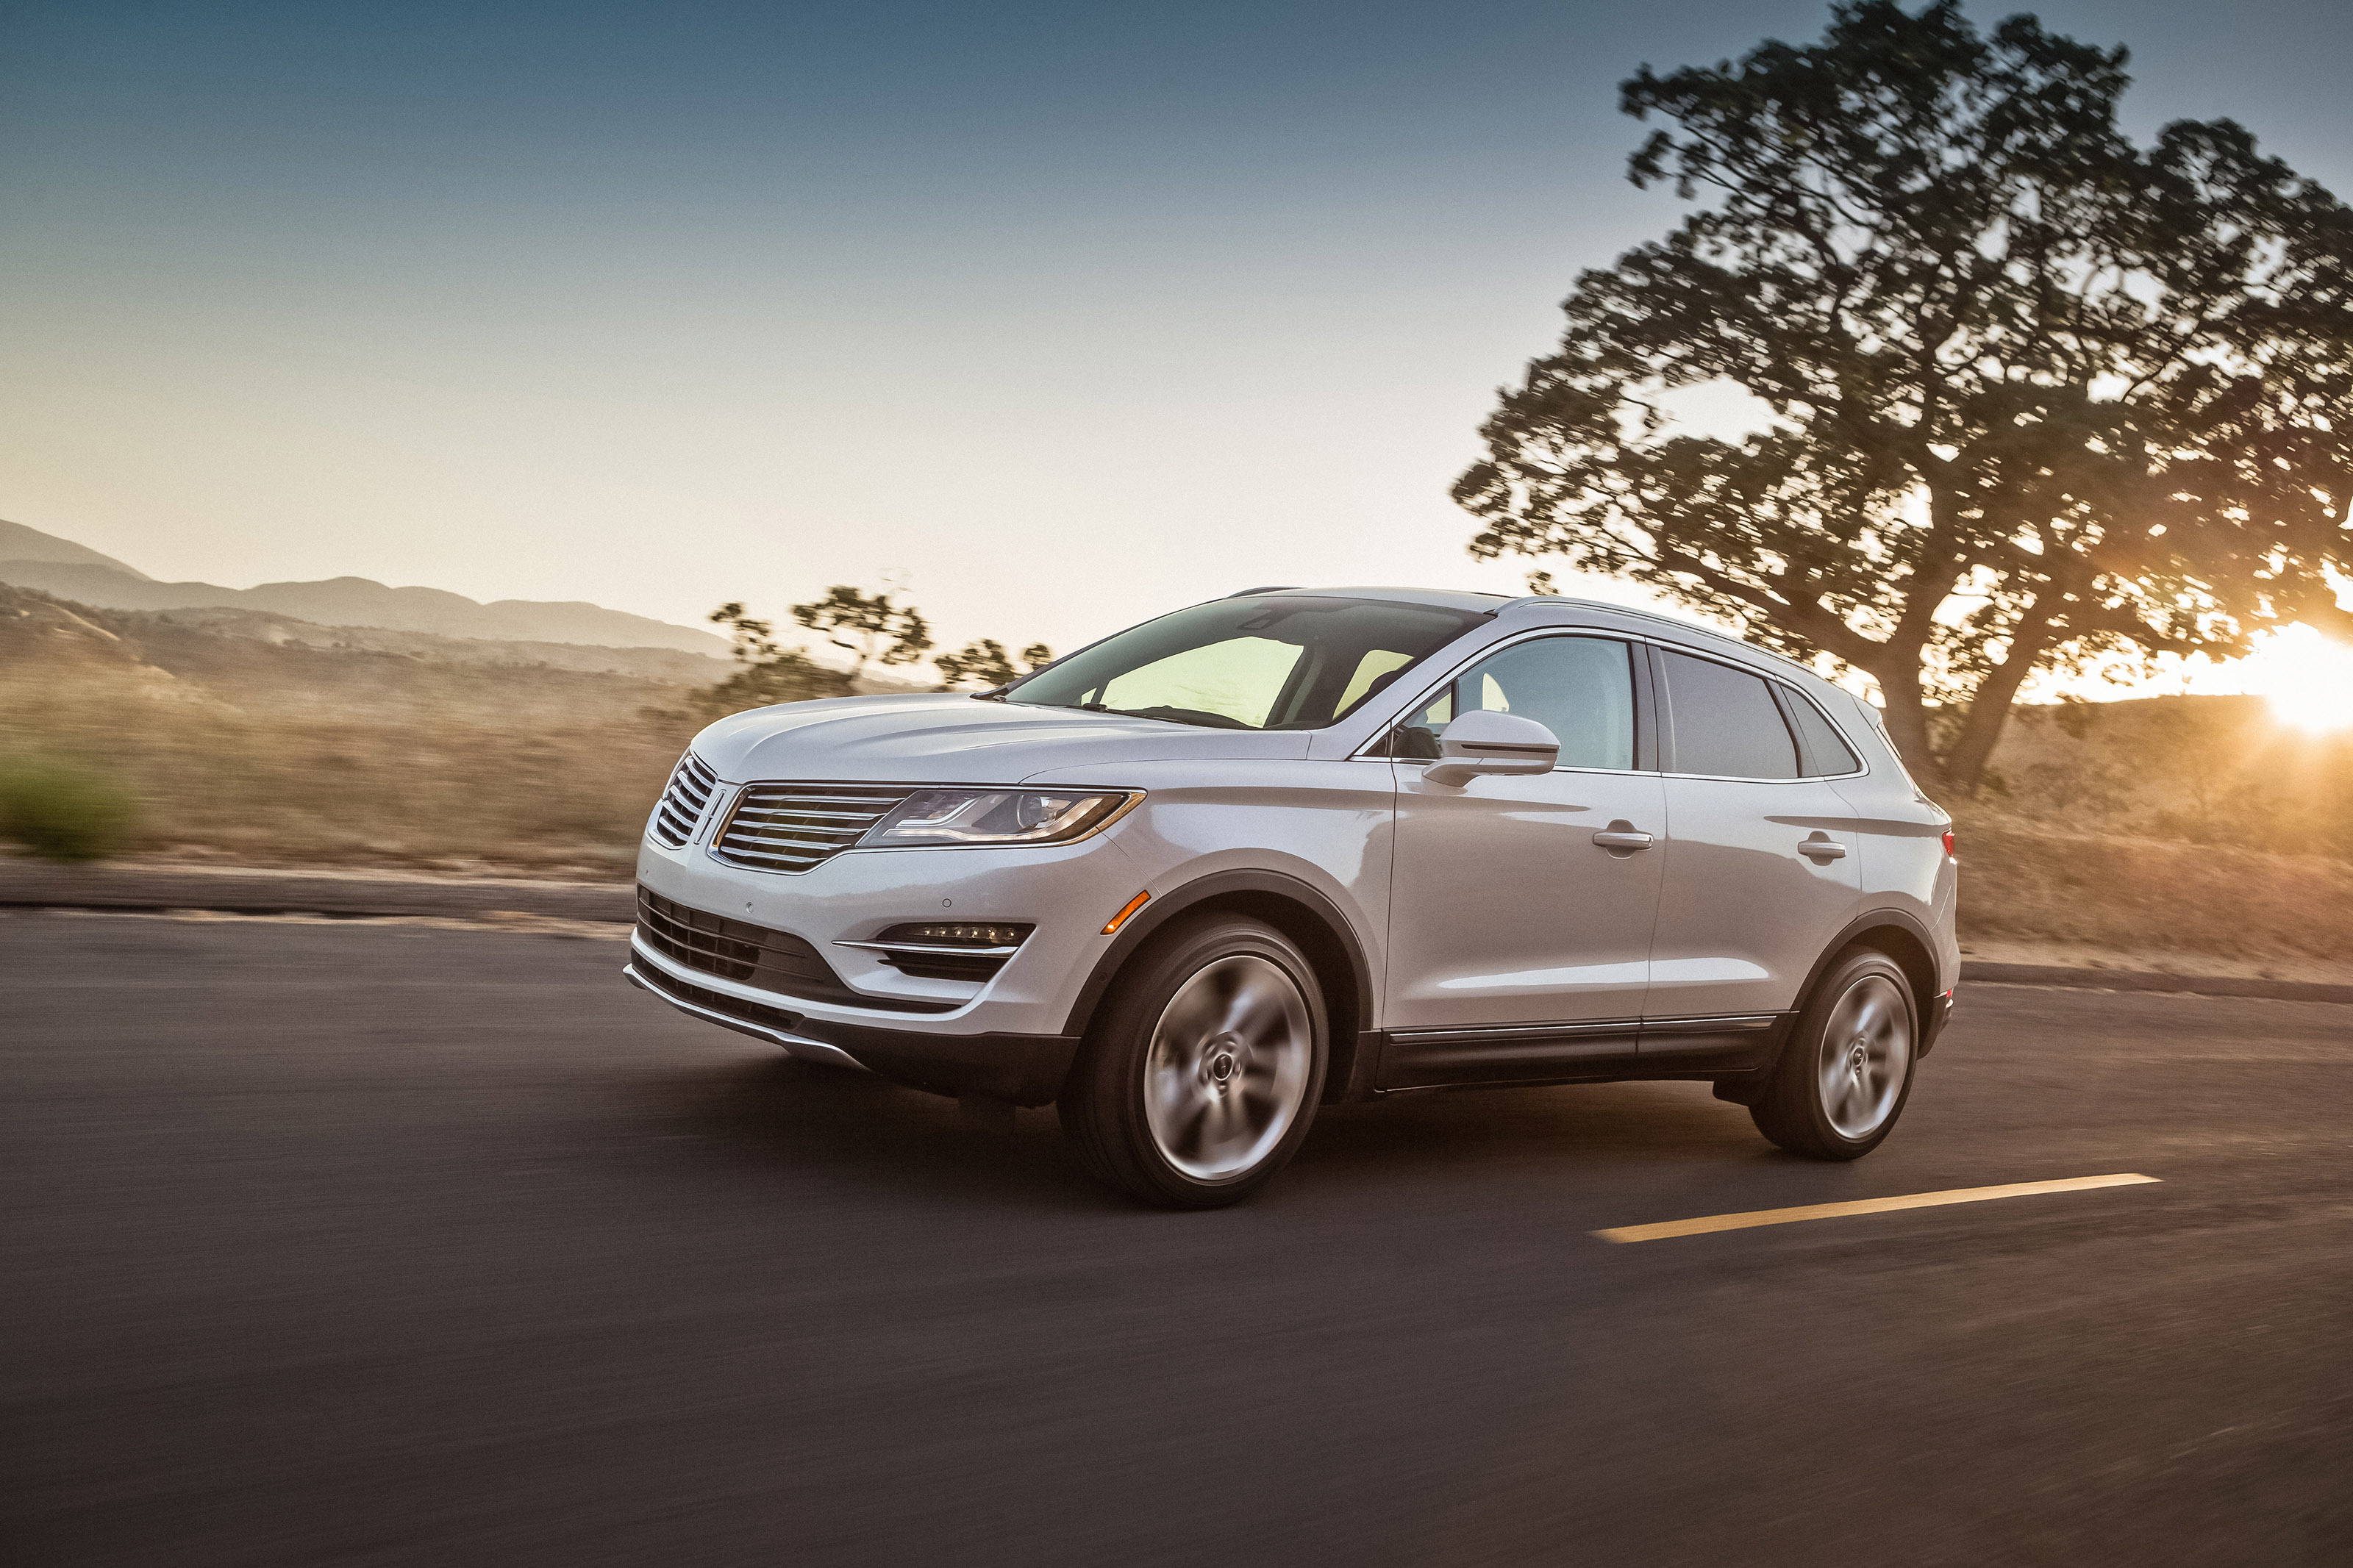 All New 2015 Lincoln MKC wins Best Buy Award from Consumer Guide